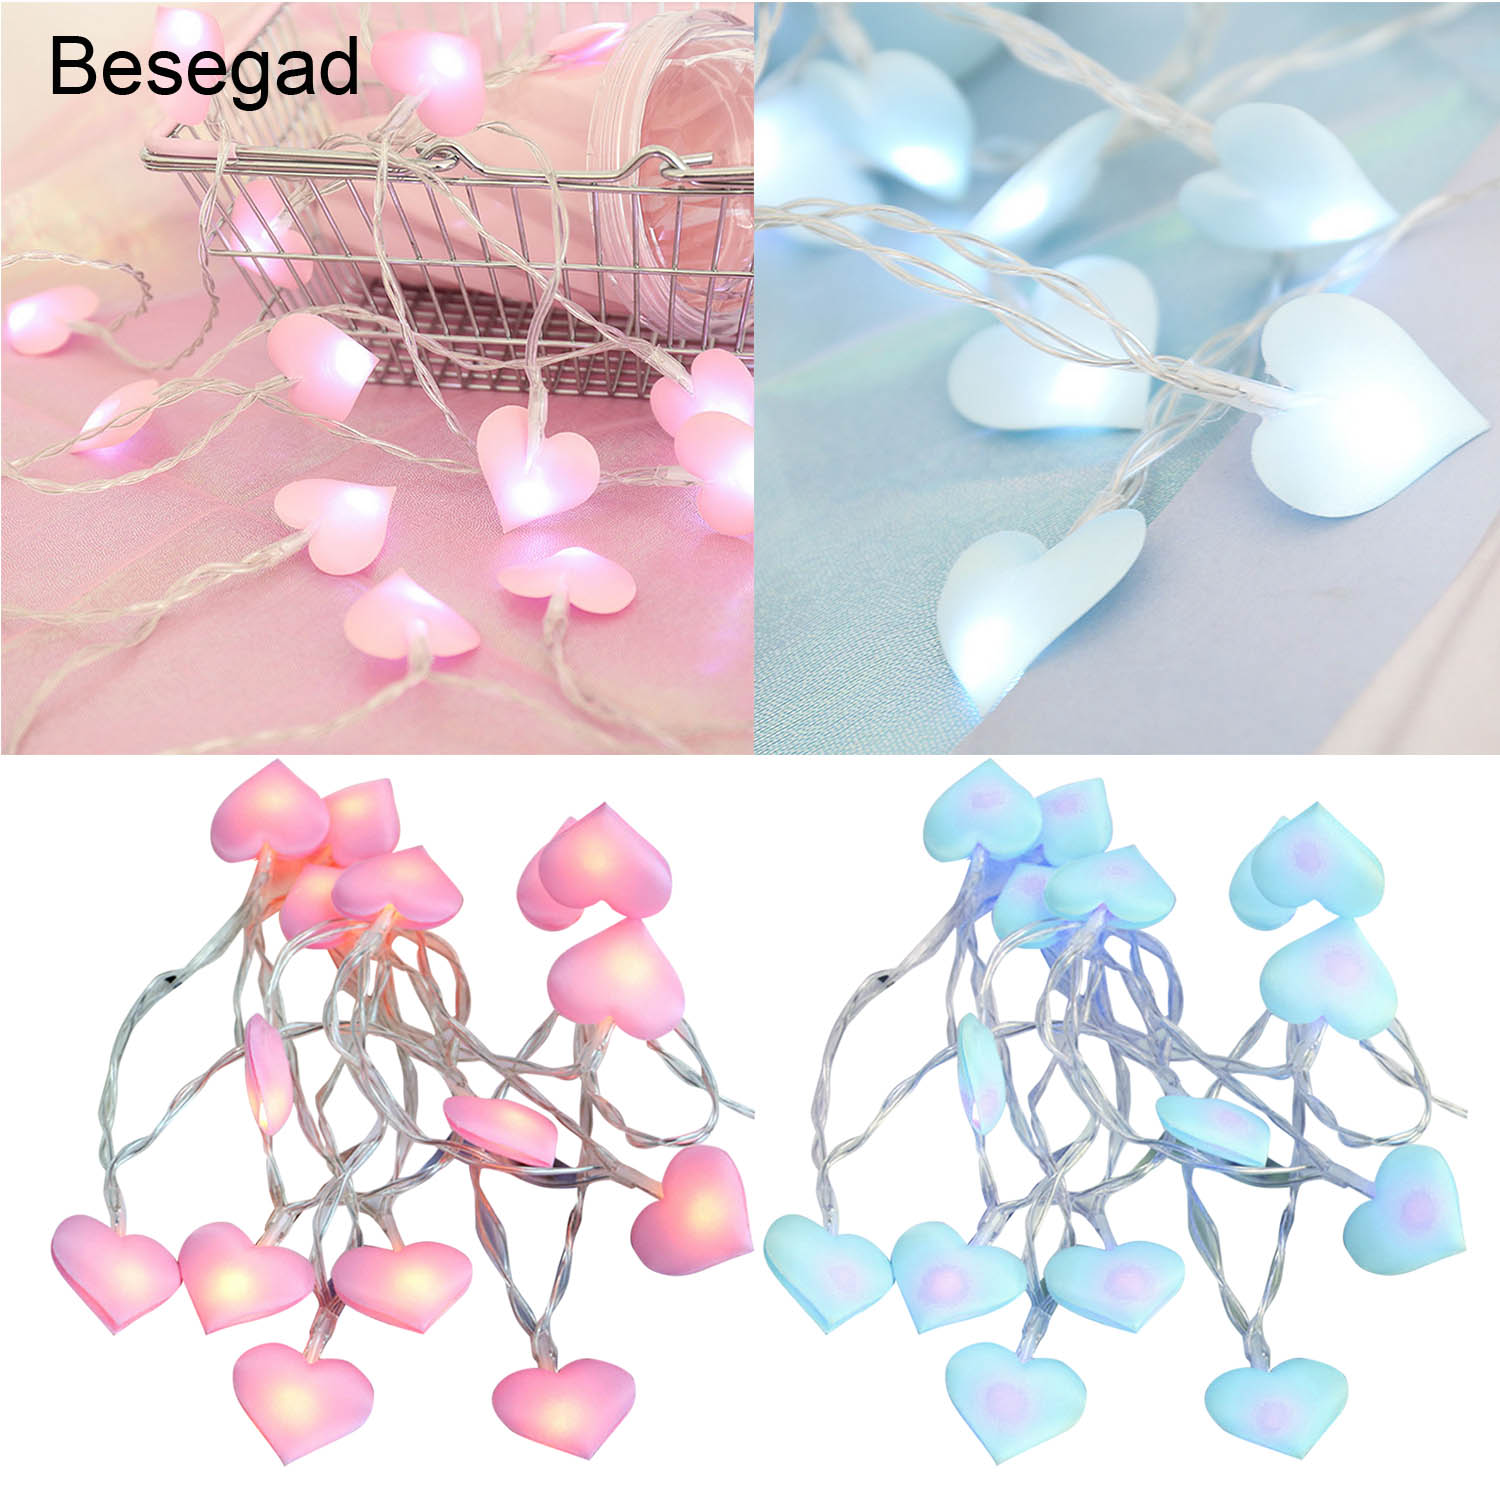 Behogar 1.5m 10 LED Cute Heart Ornament String Fairy Lights Battery Operated DIY Home Xmas Christmas Holidays Party Decorations